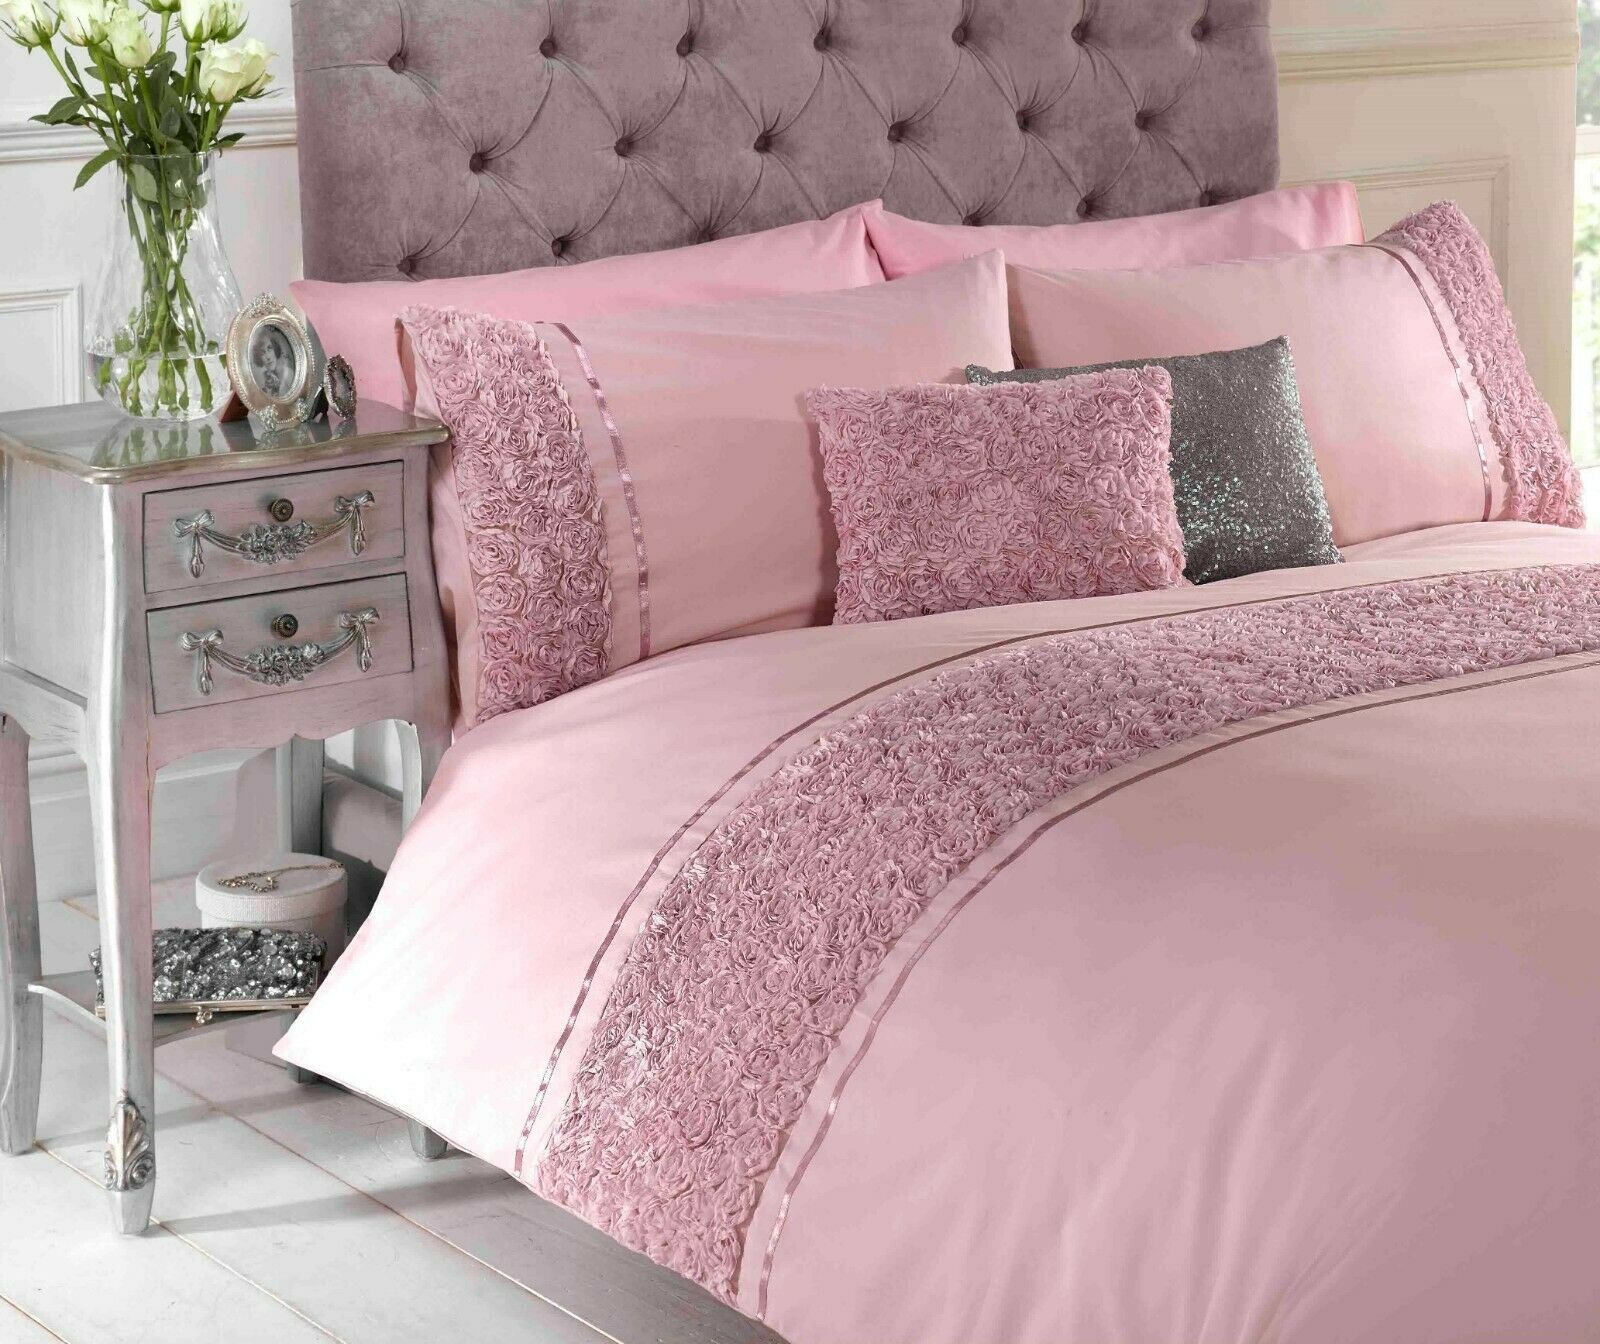 Rapport Limoges Roses Ruffles Style Band Duvet Cover Bedding Set Pink Bb Textiles Bb Textiles